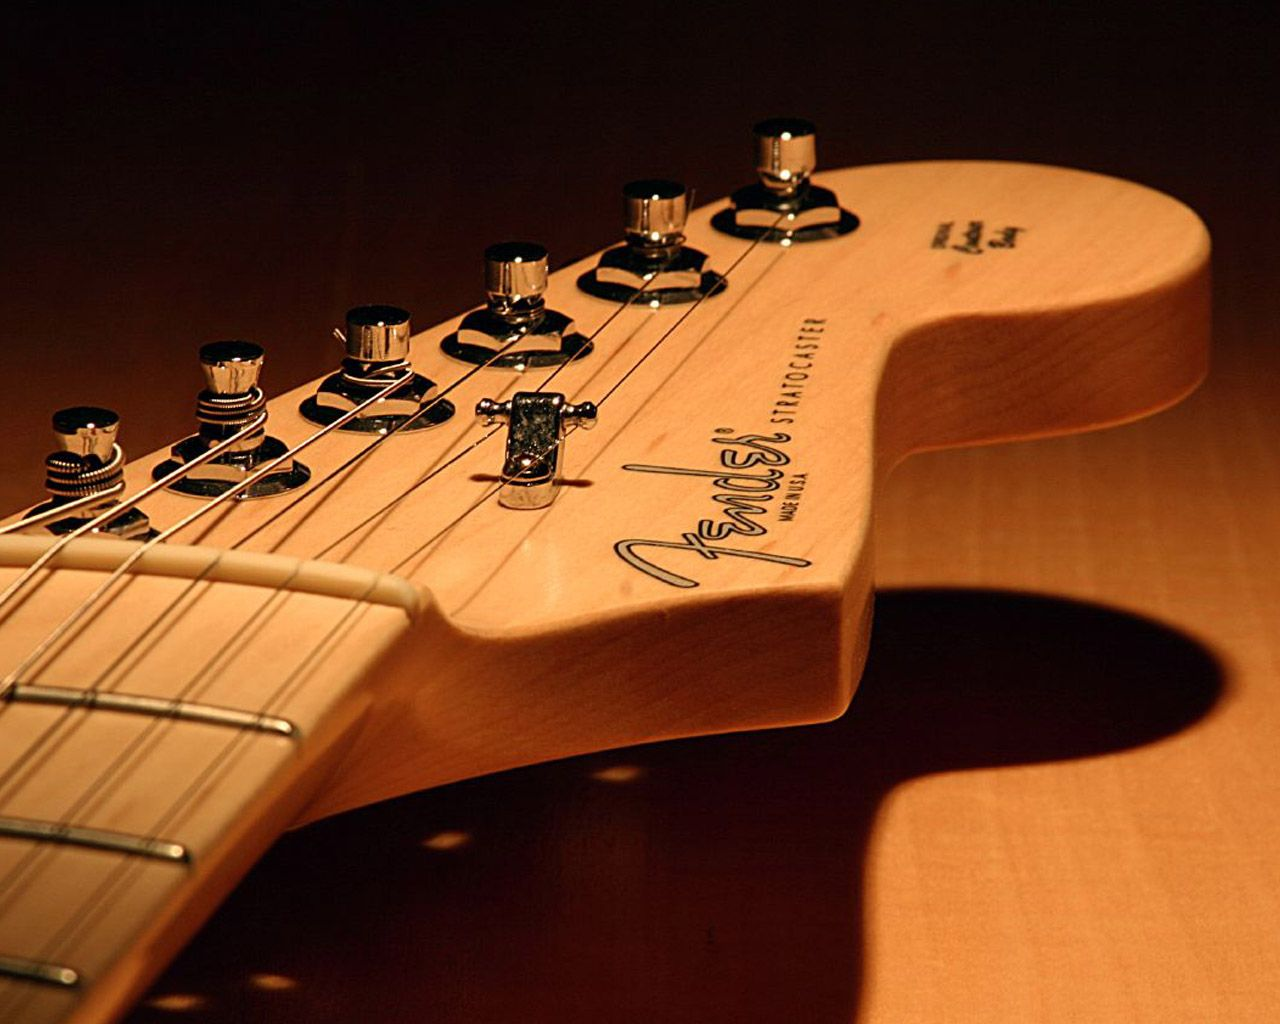 Guitar Wallpaper Fender Stratocaster Headstock 1280x1024 Great Guitar Sound Fender Stratocaster Electric Guitar Guitar